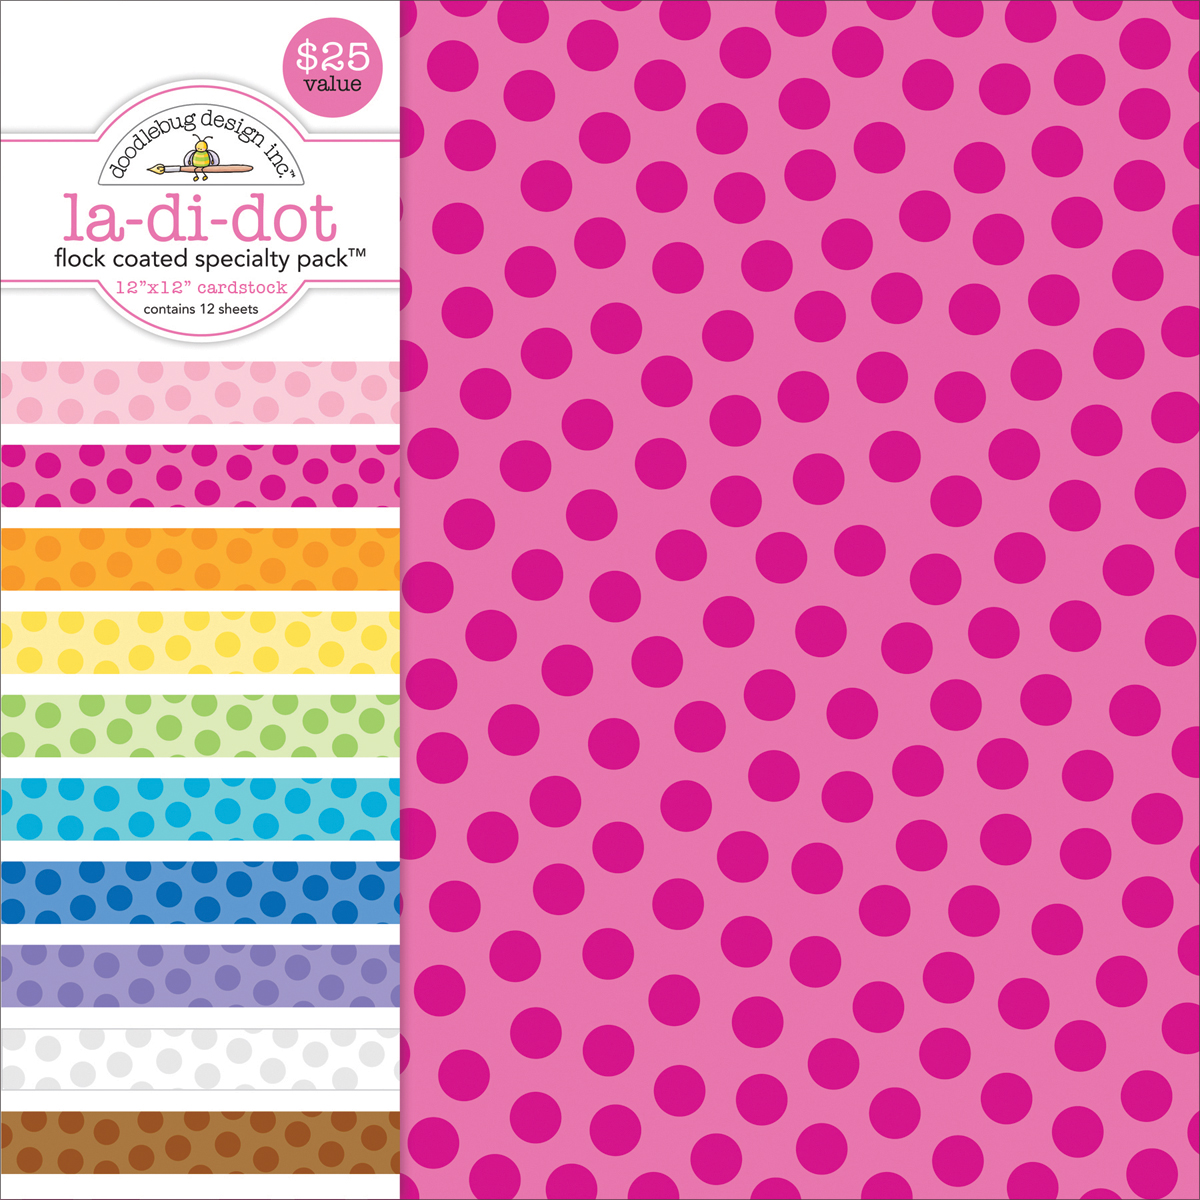 Doodlebug Flocked La-Di-Dot Specialty Cardstock Value Pack